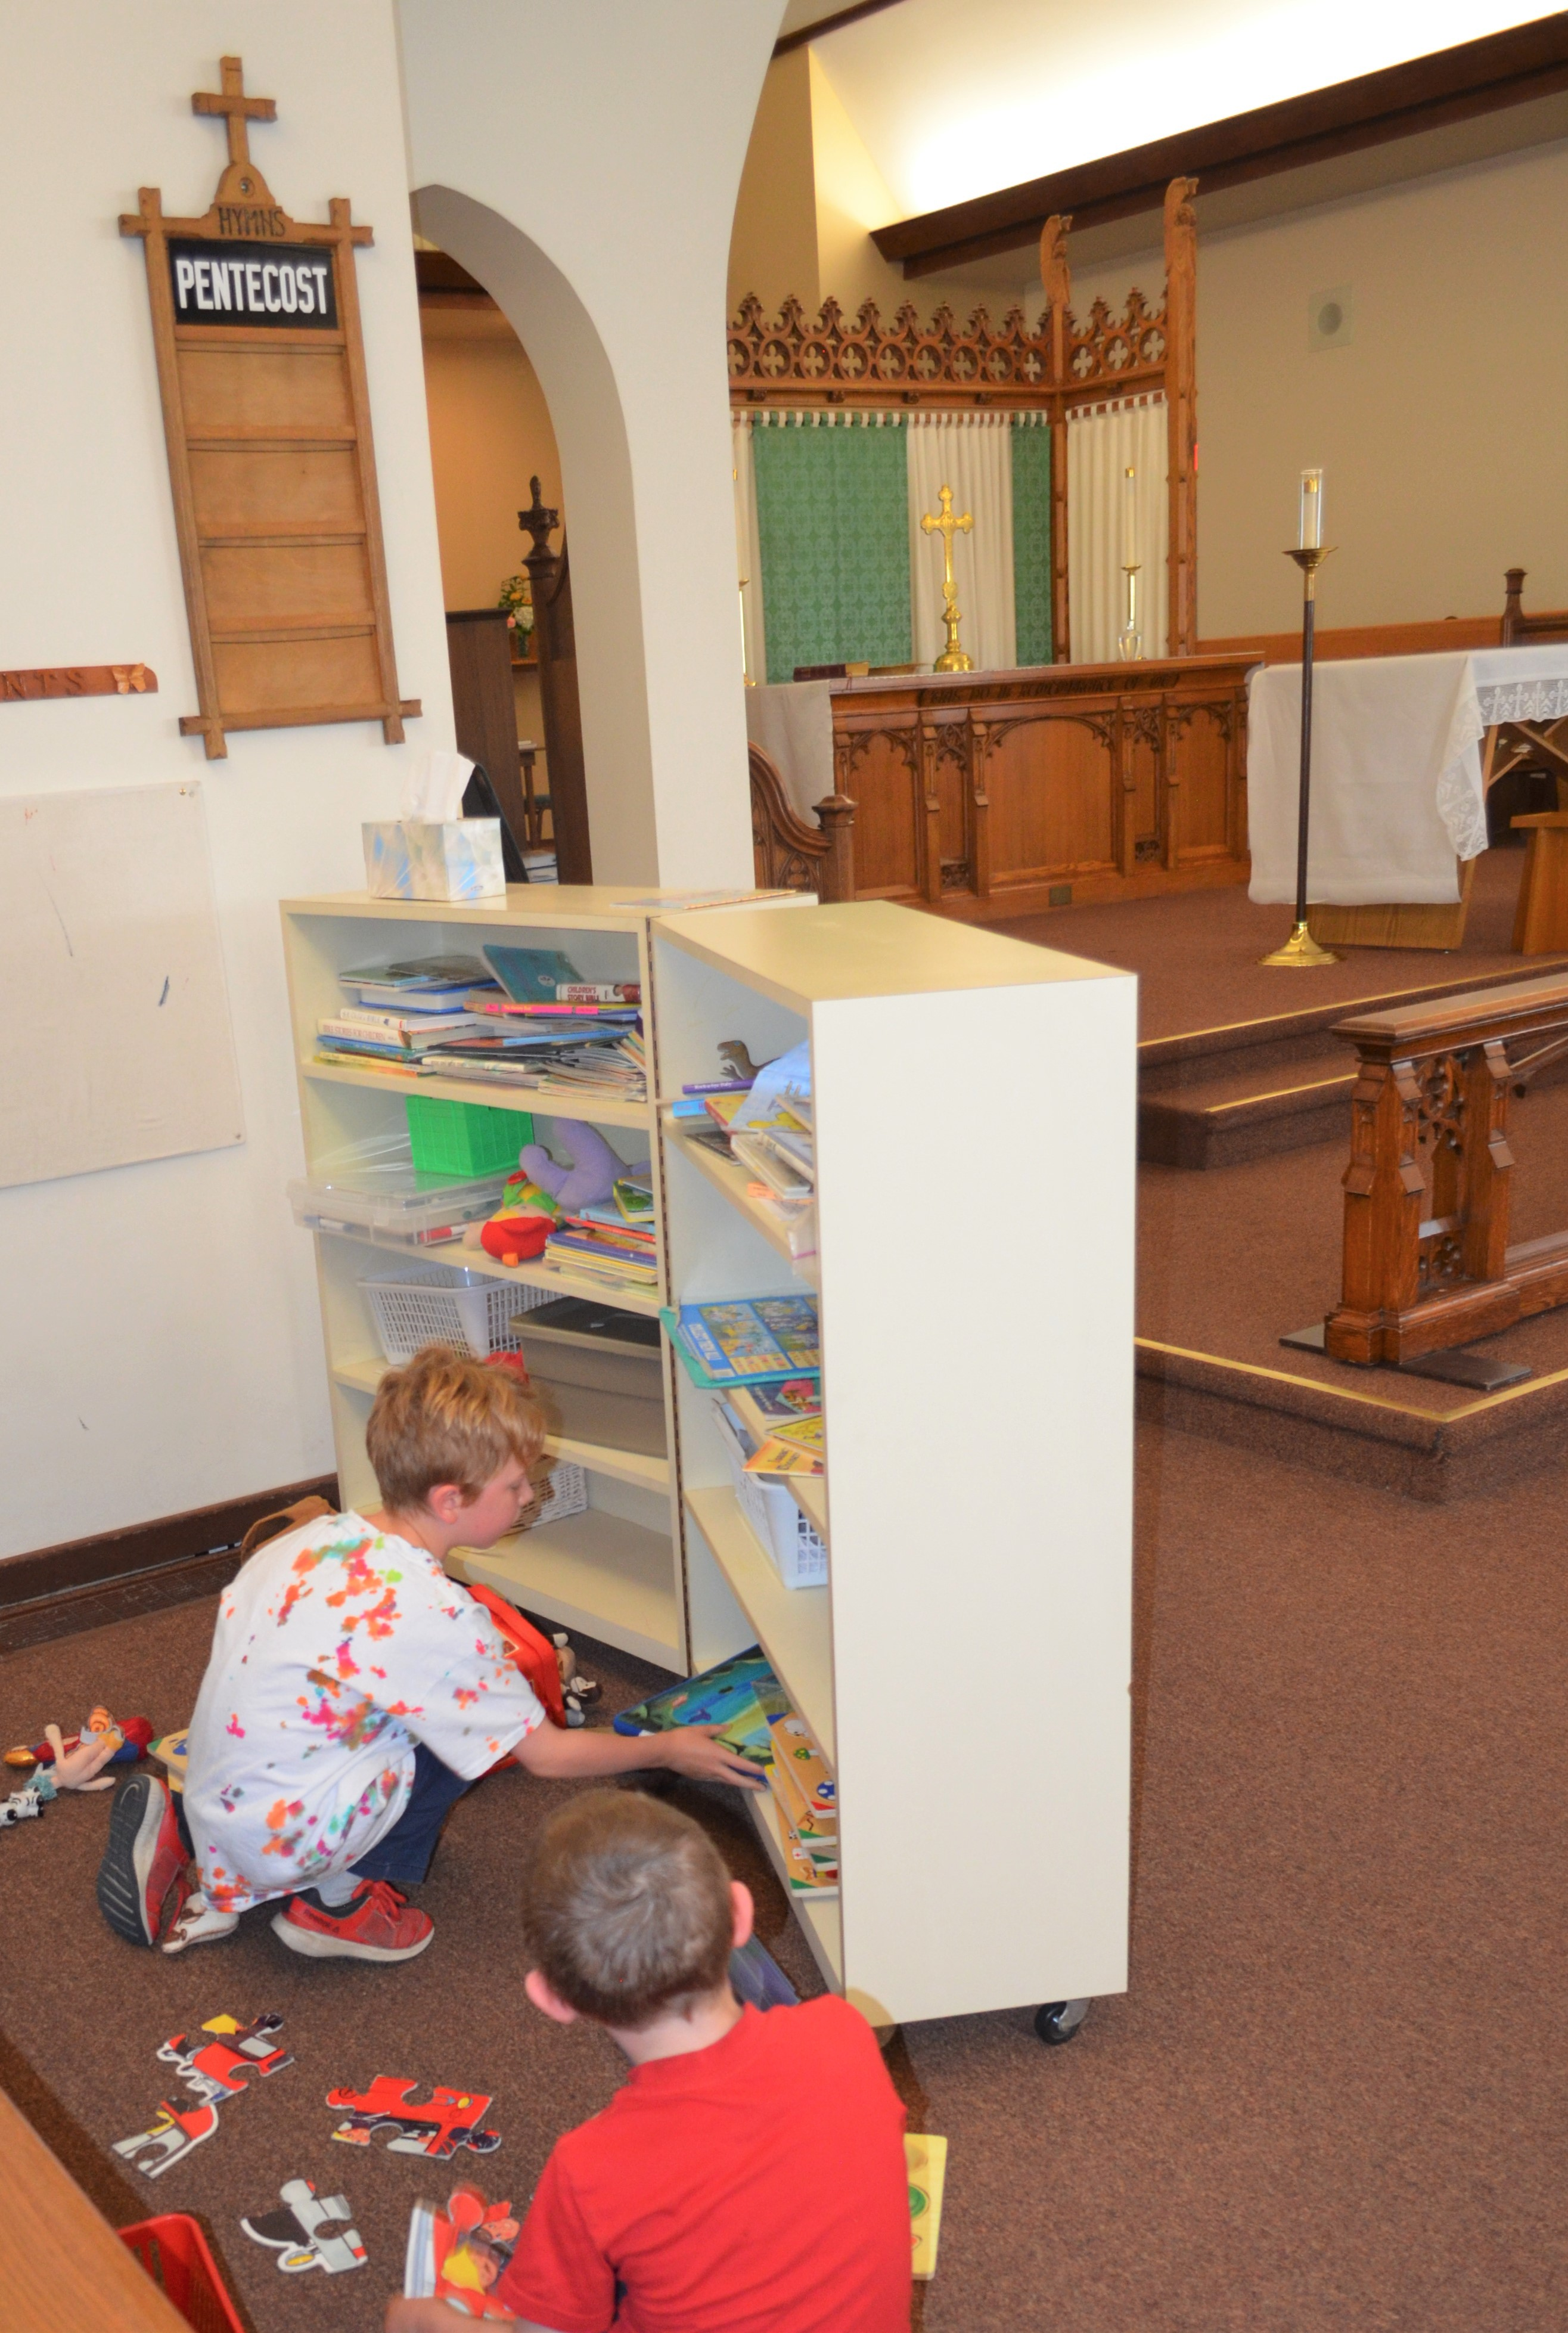 Two children playing with toys and books in the children's play area at the front of the church.